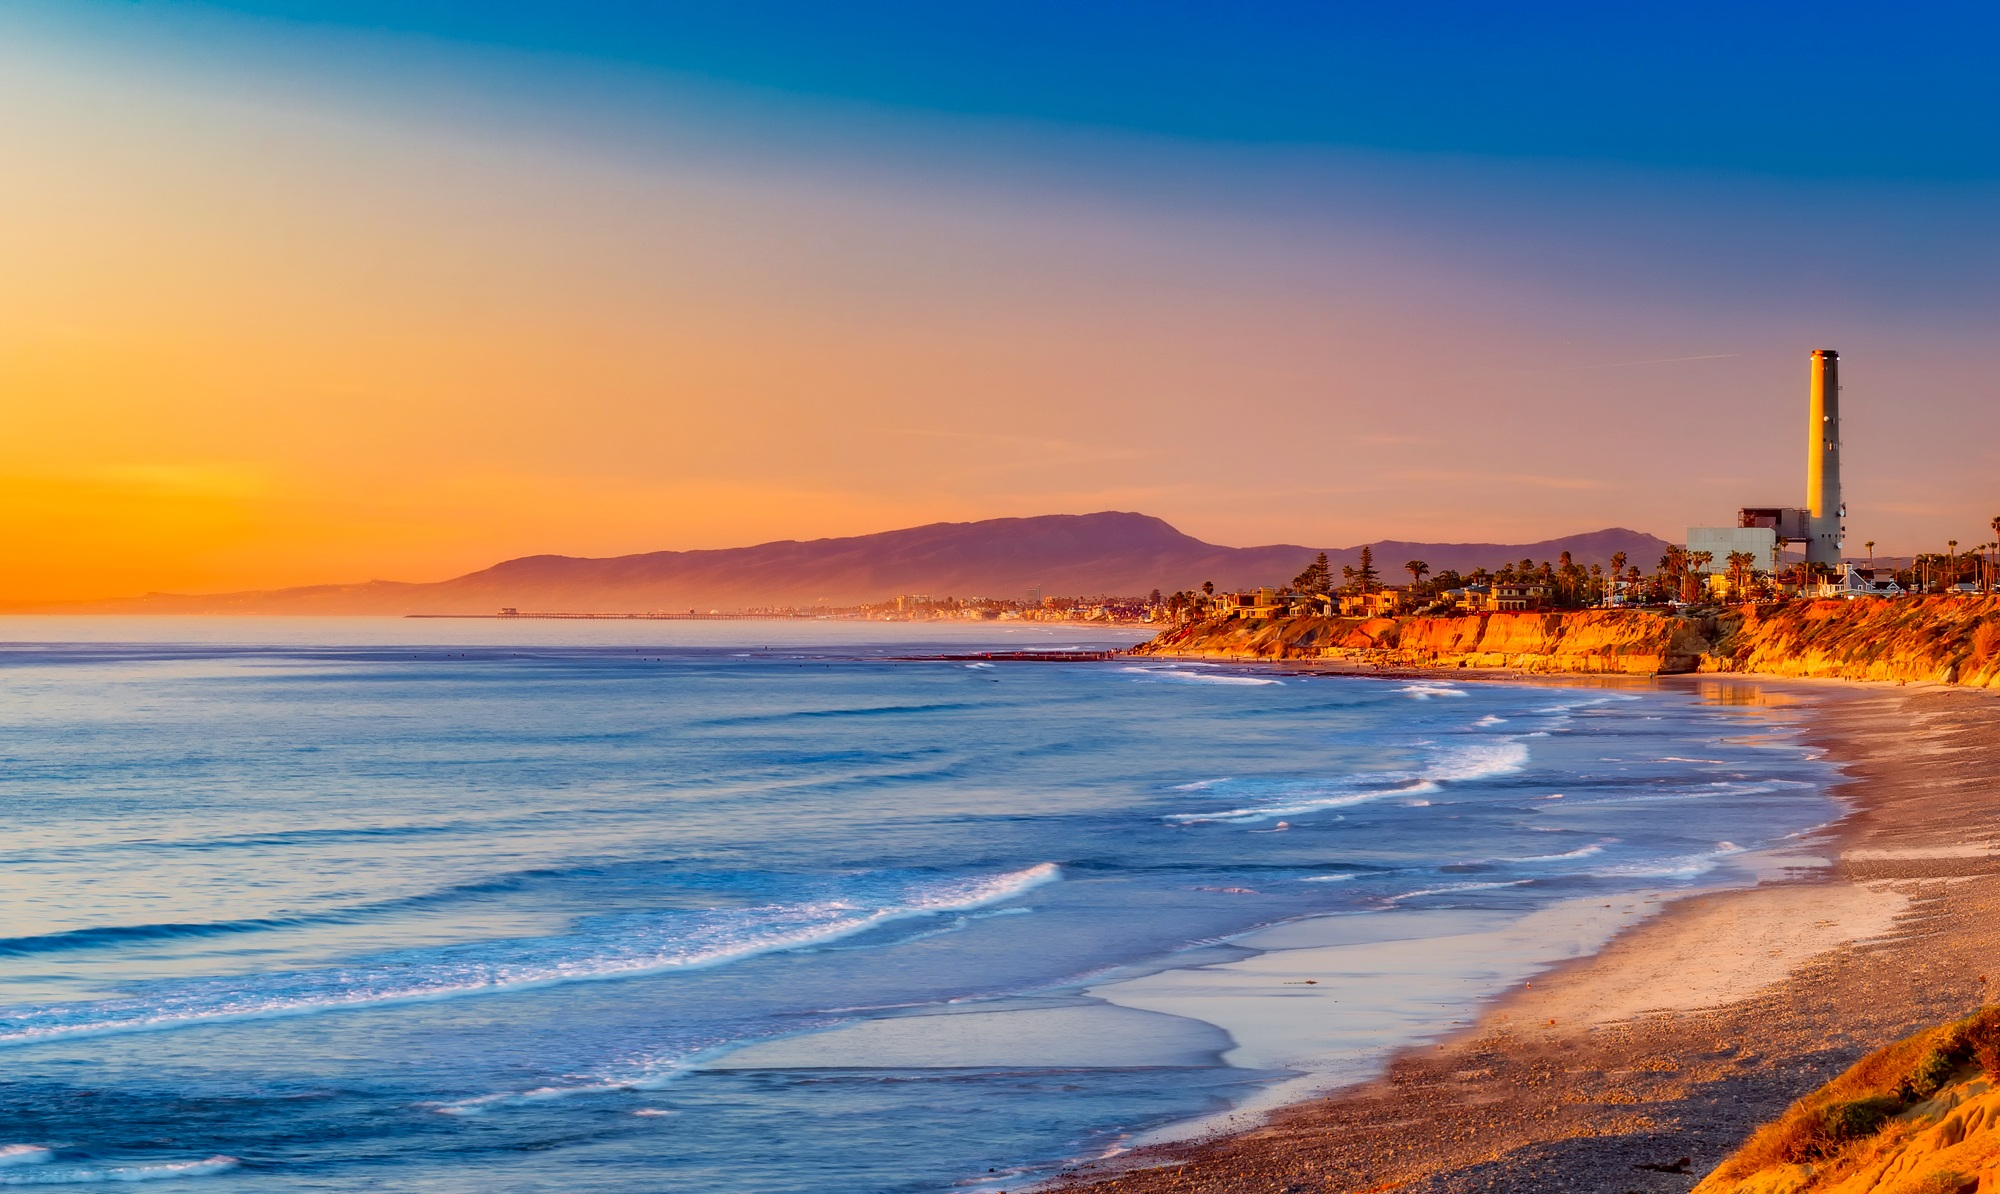 Free stock photo of beach beautiful california for Pretty beaches in california